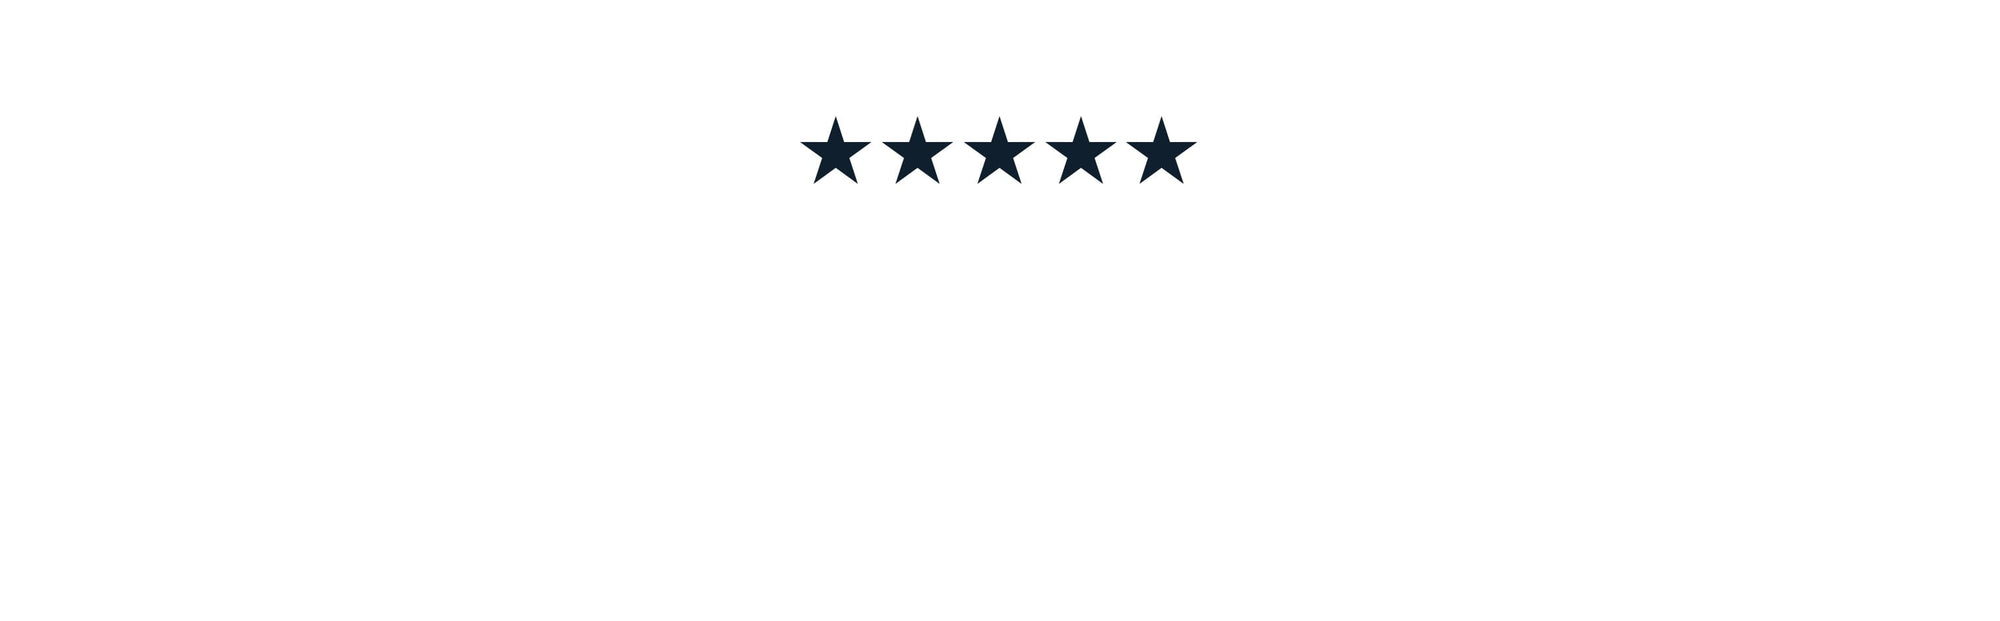 5 star review with text